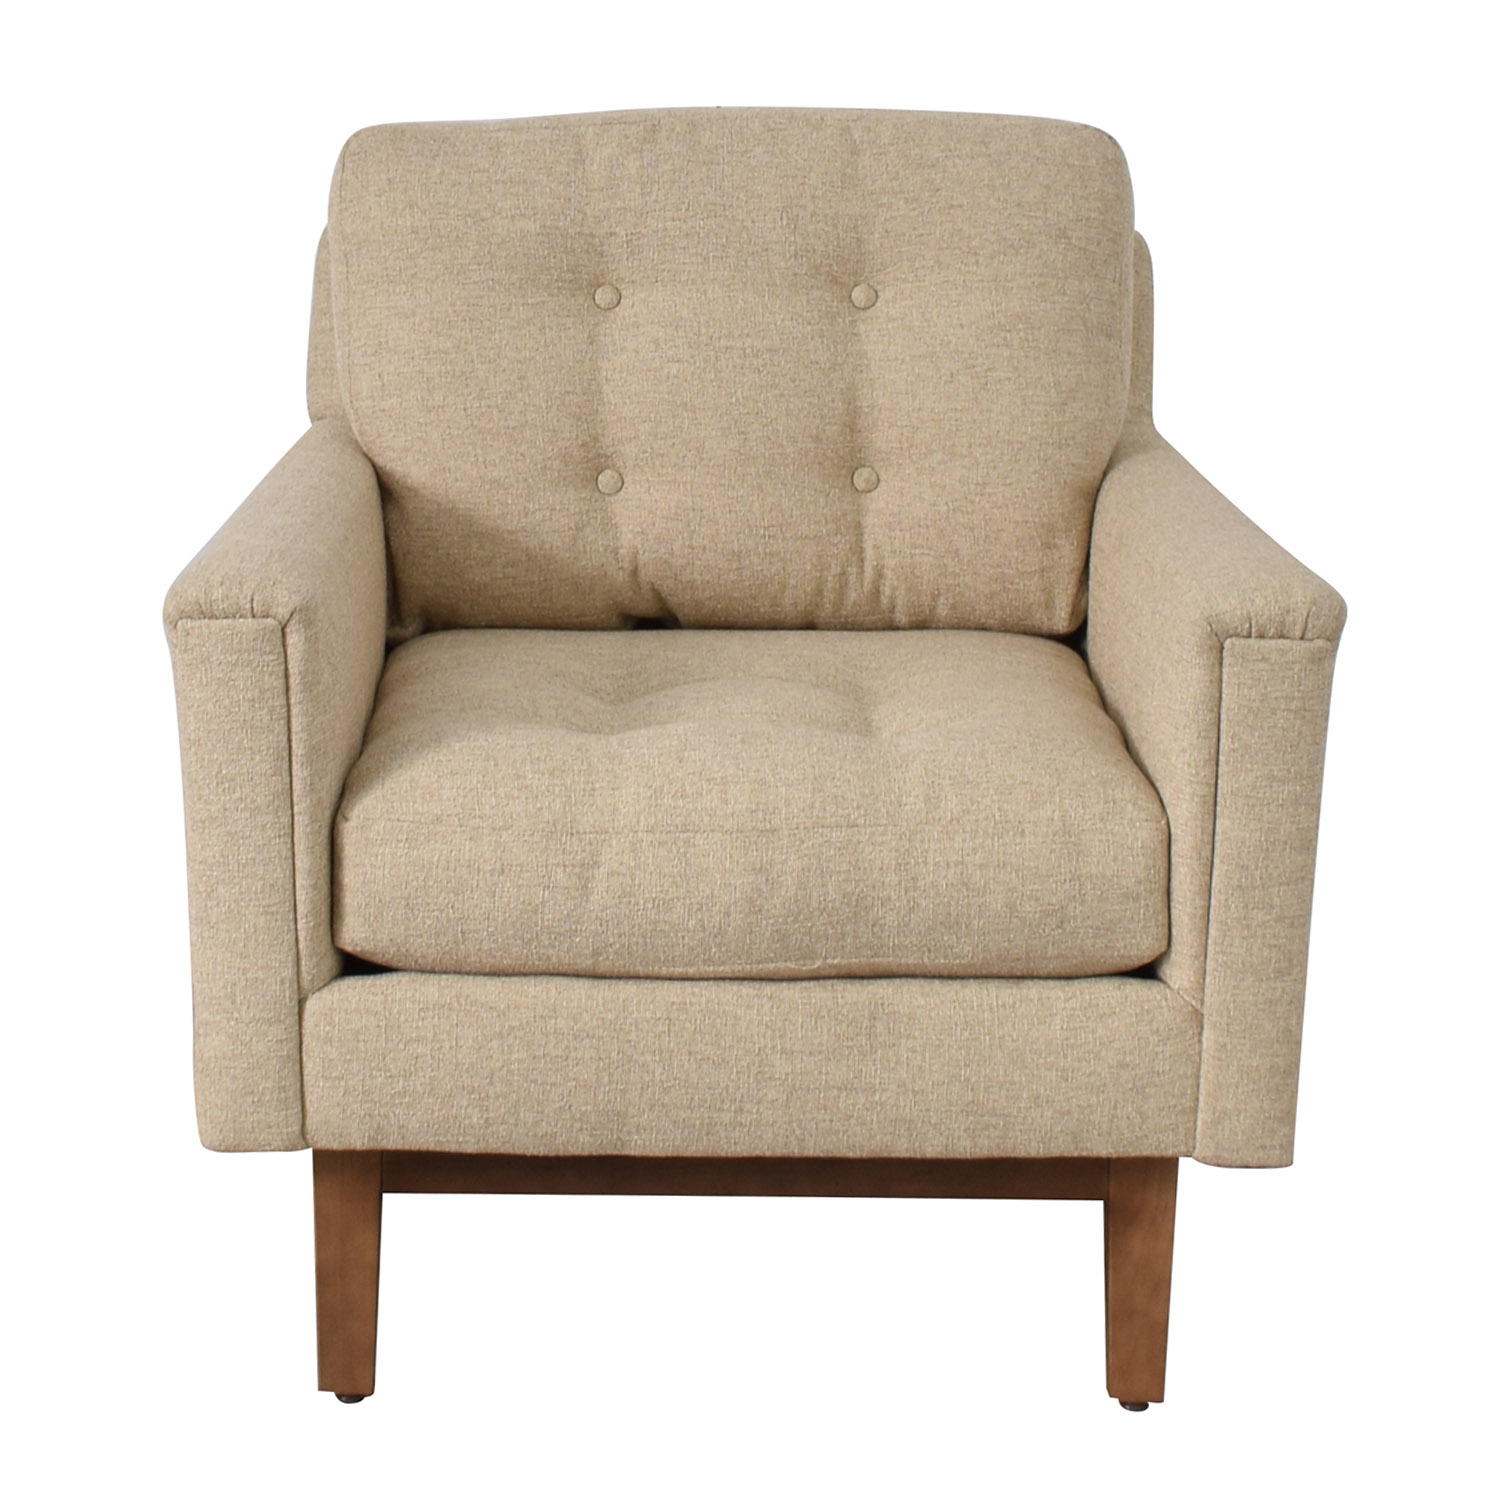 buy Rowe Furniture Ethan Beige Tufted Accent Armchair Rowe Furniture Accent Chairs